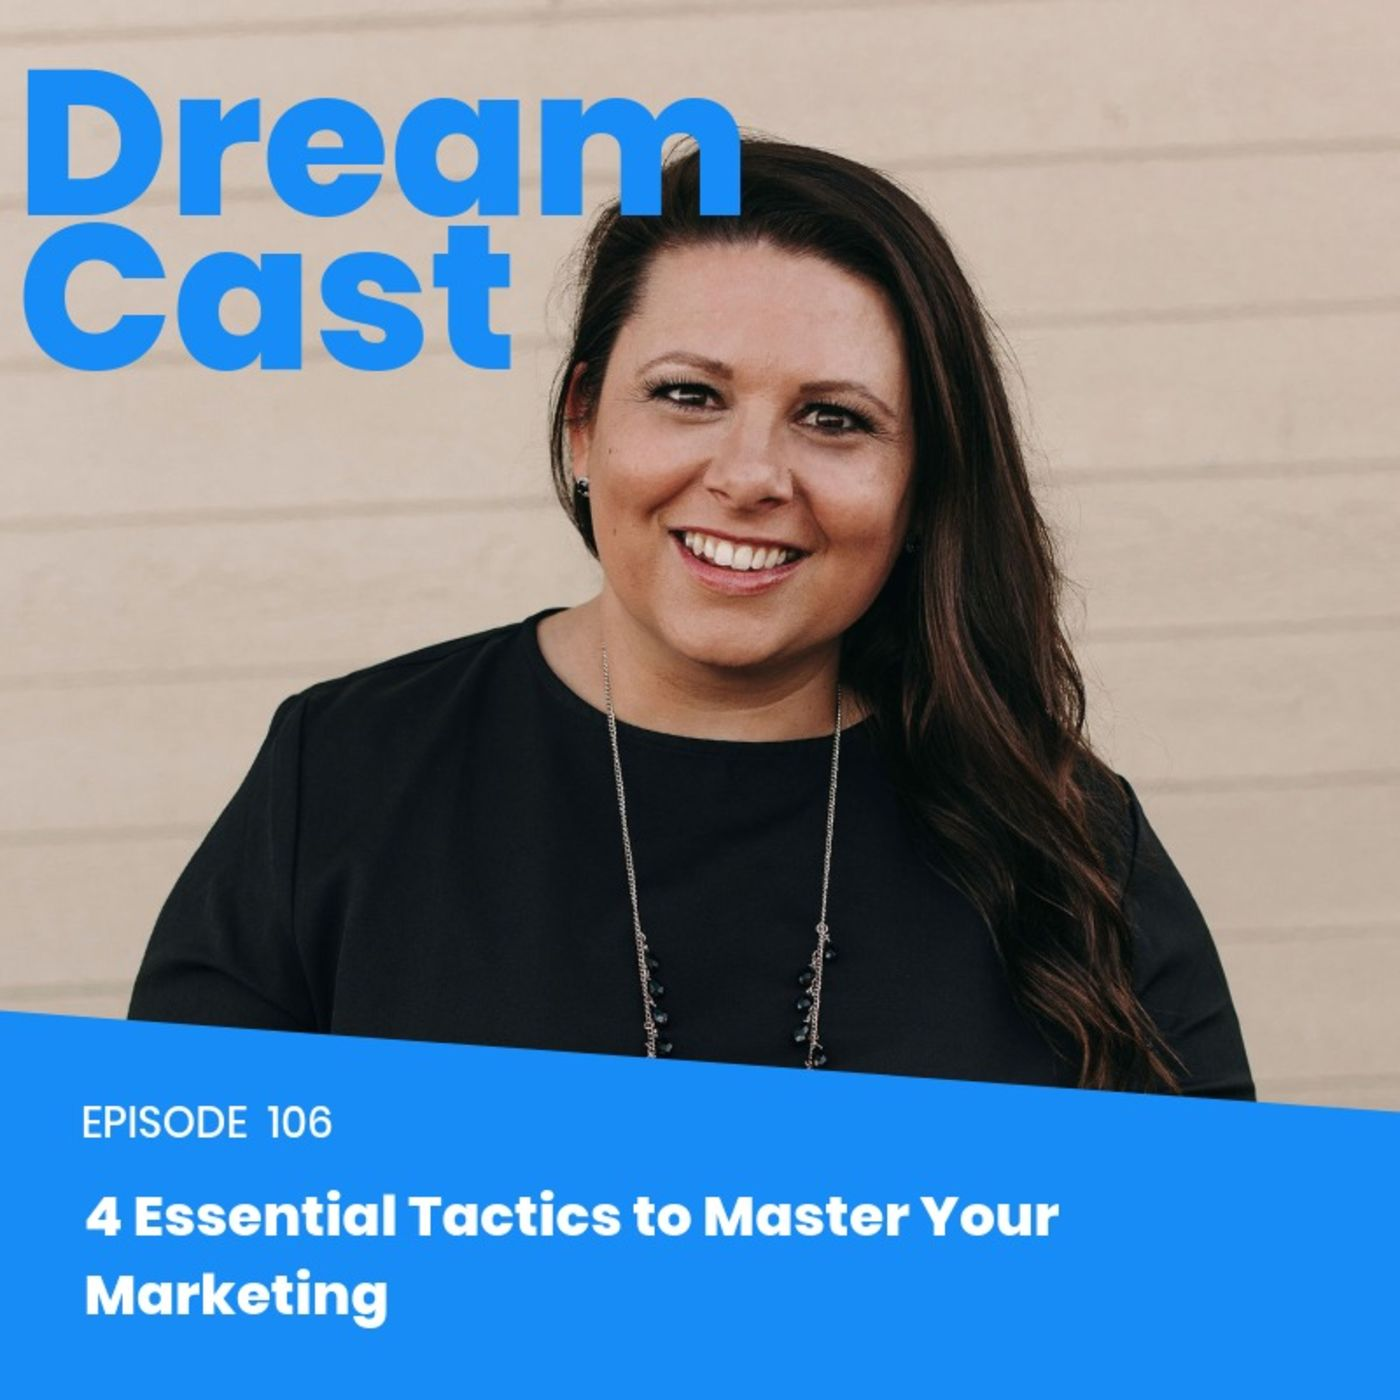 Episode 106 - 4 Essential Tactics to Master Your Marketing